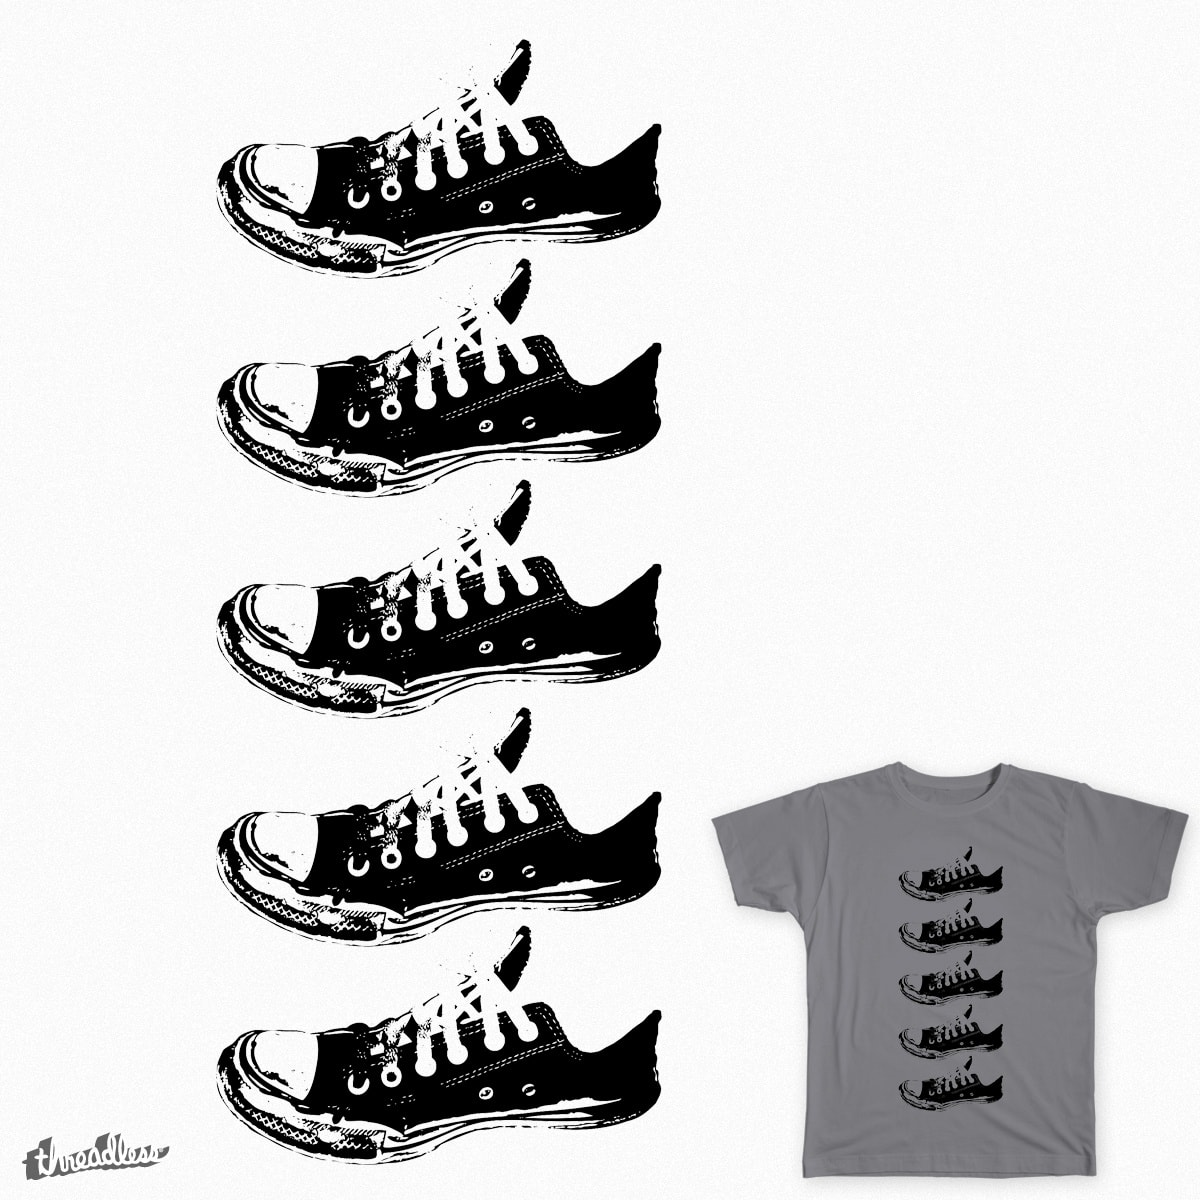 Dirty Chucks by taytaydowns on Threadless